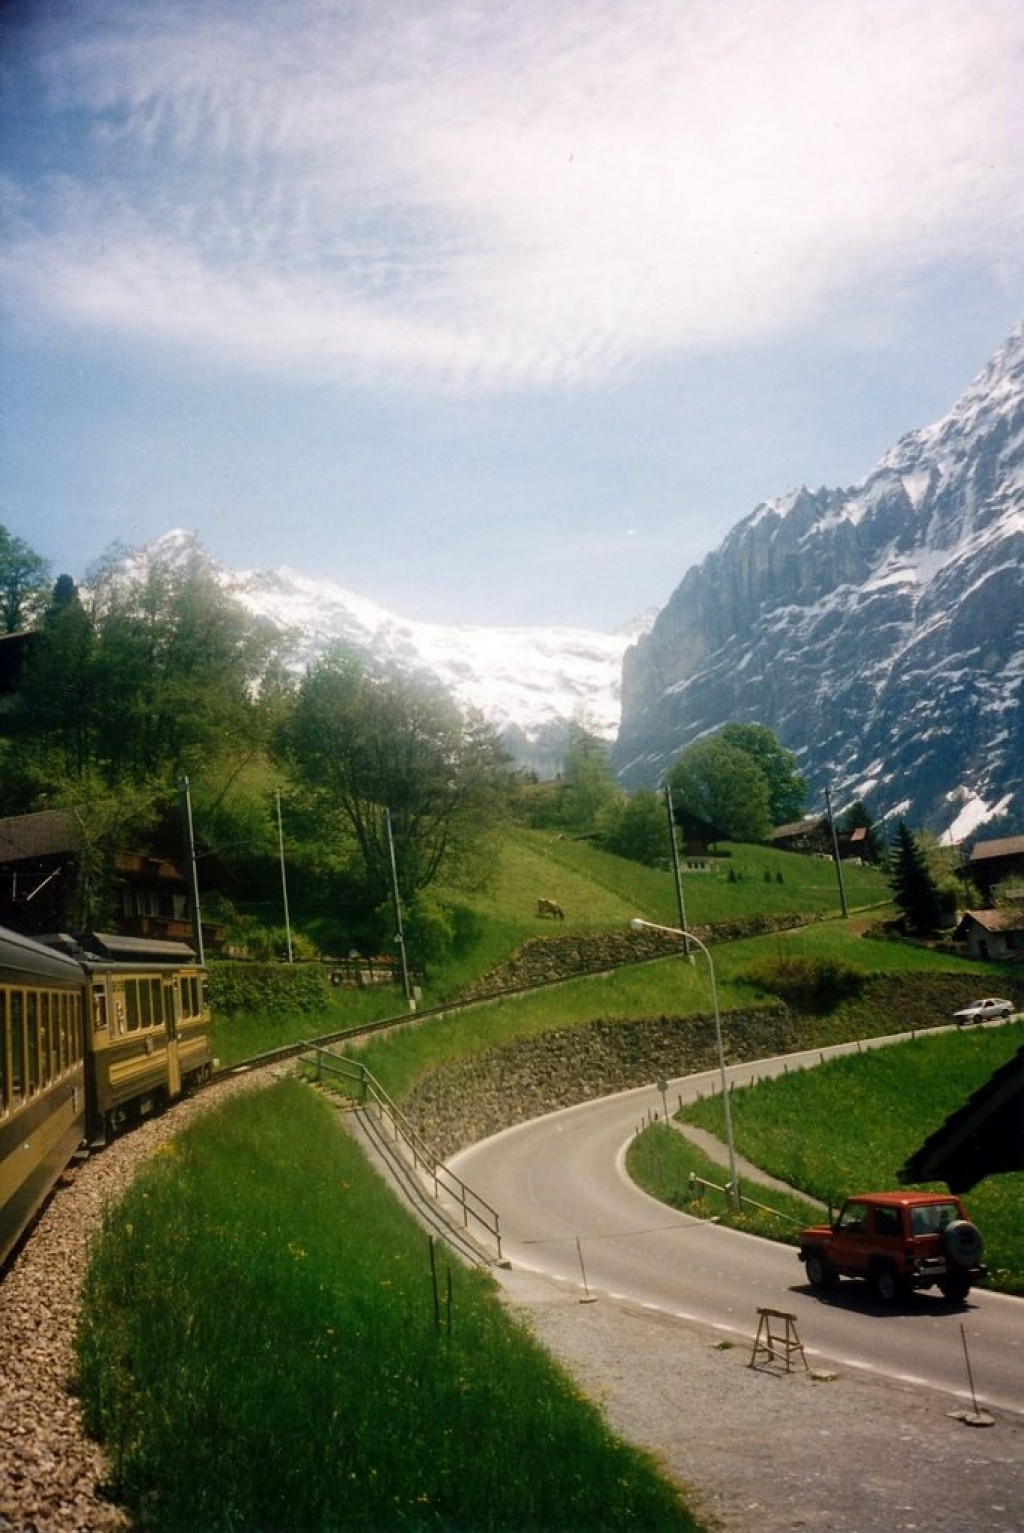 Going up the Jungfrau, one of the highest peaks in the Swiss Alps, by train